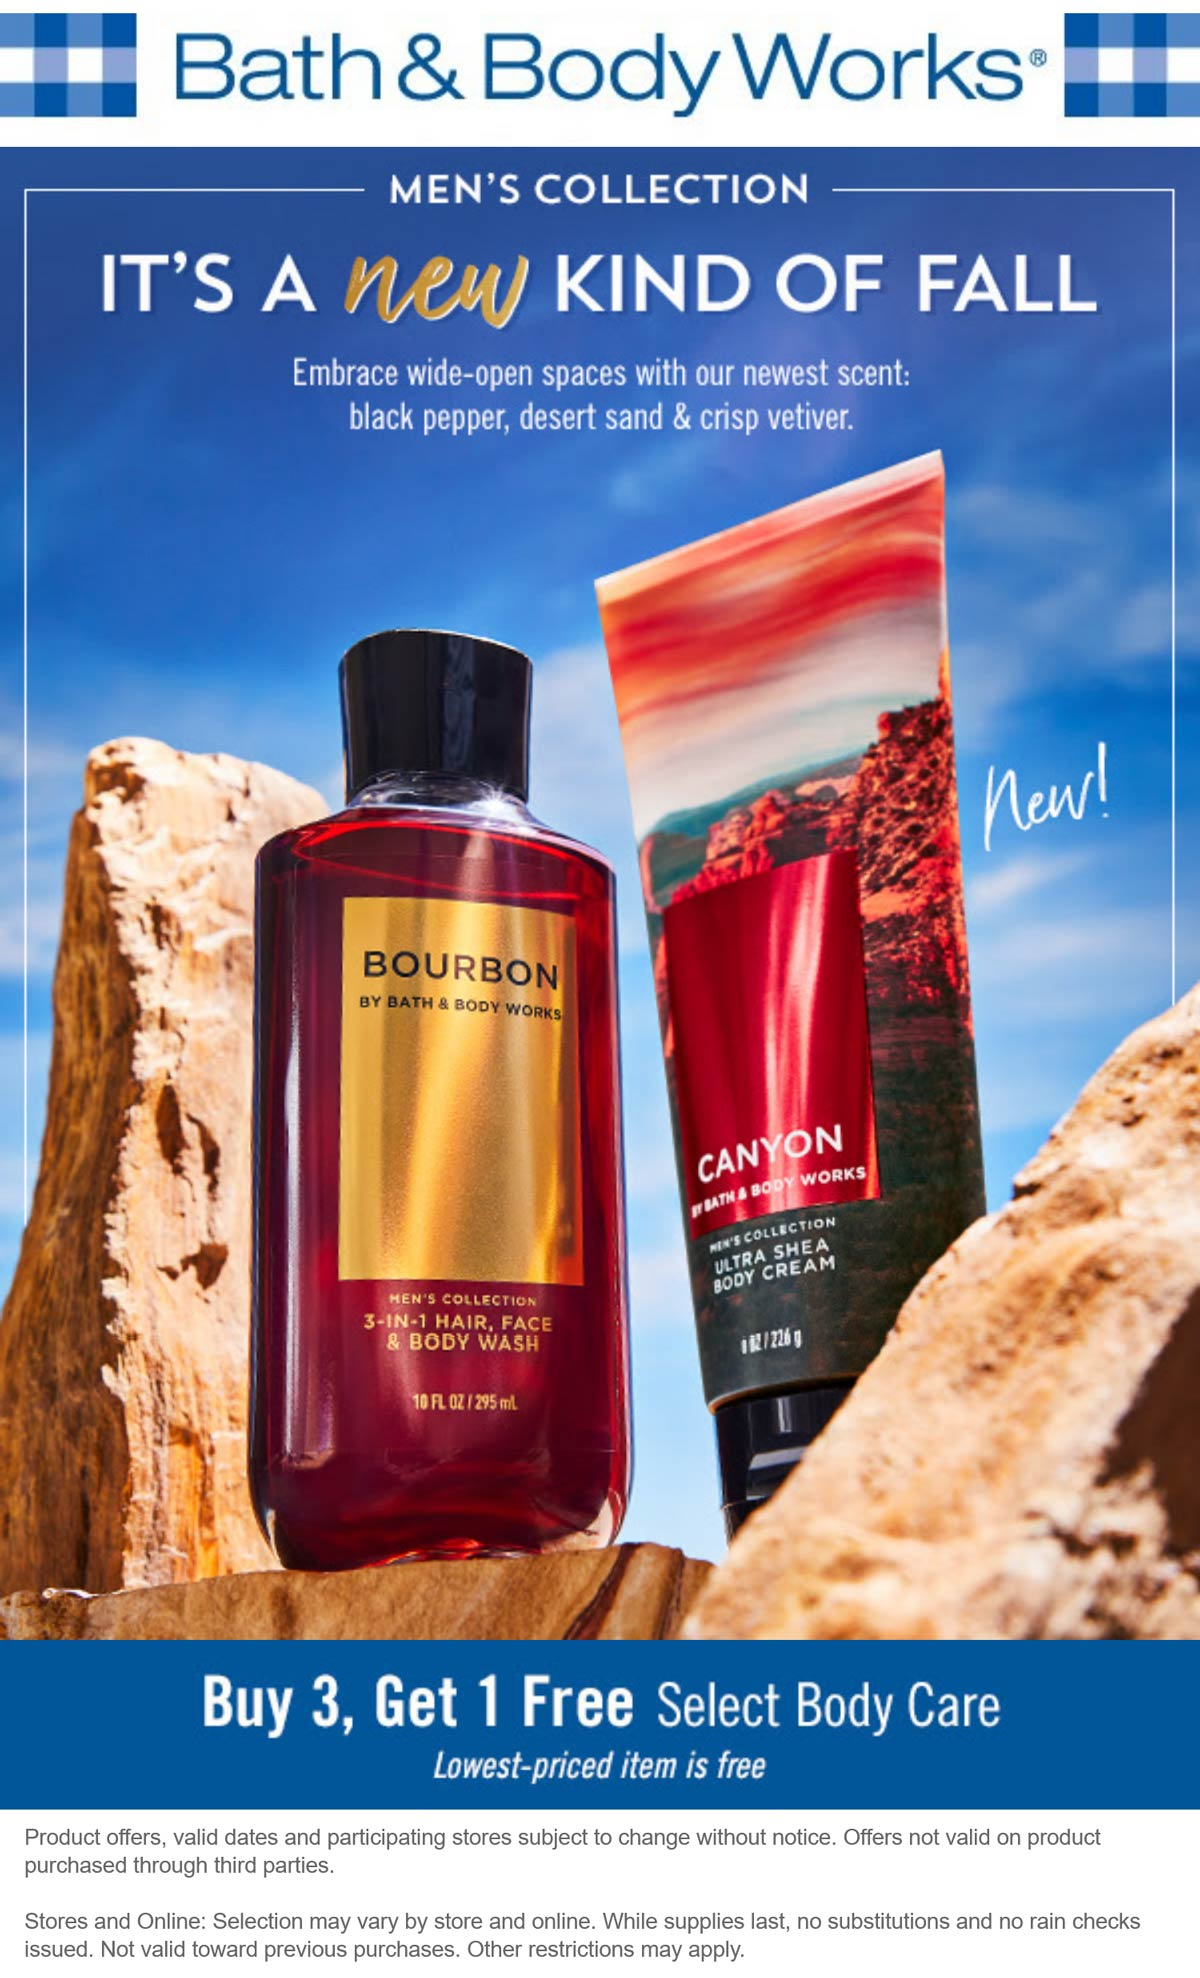 Bath & Body Works stores Coupon  4th body care item free at Bath & Body Works, ditto online #bathbodyworks